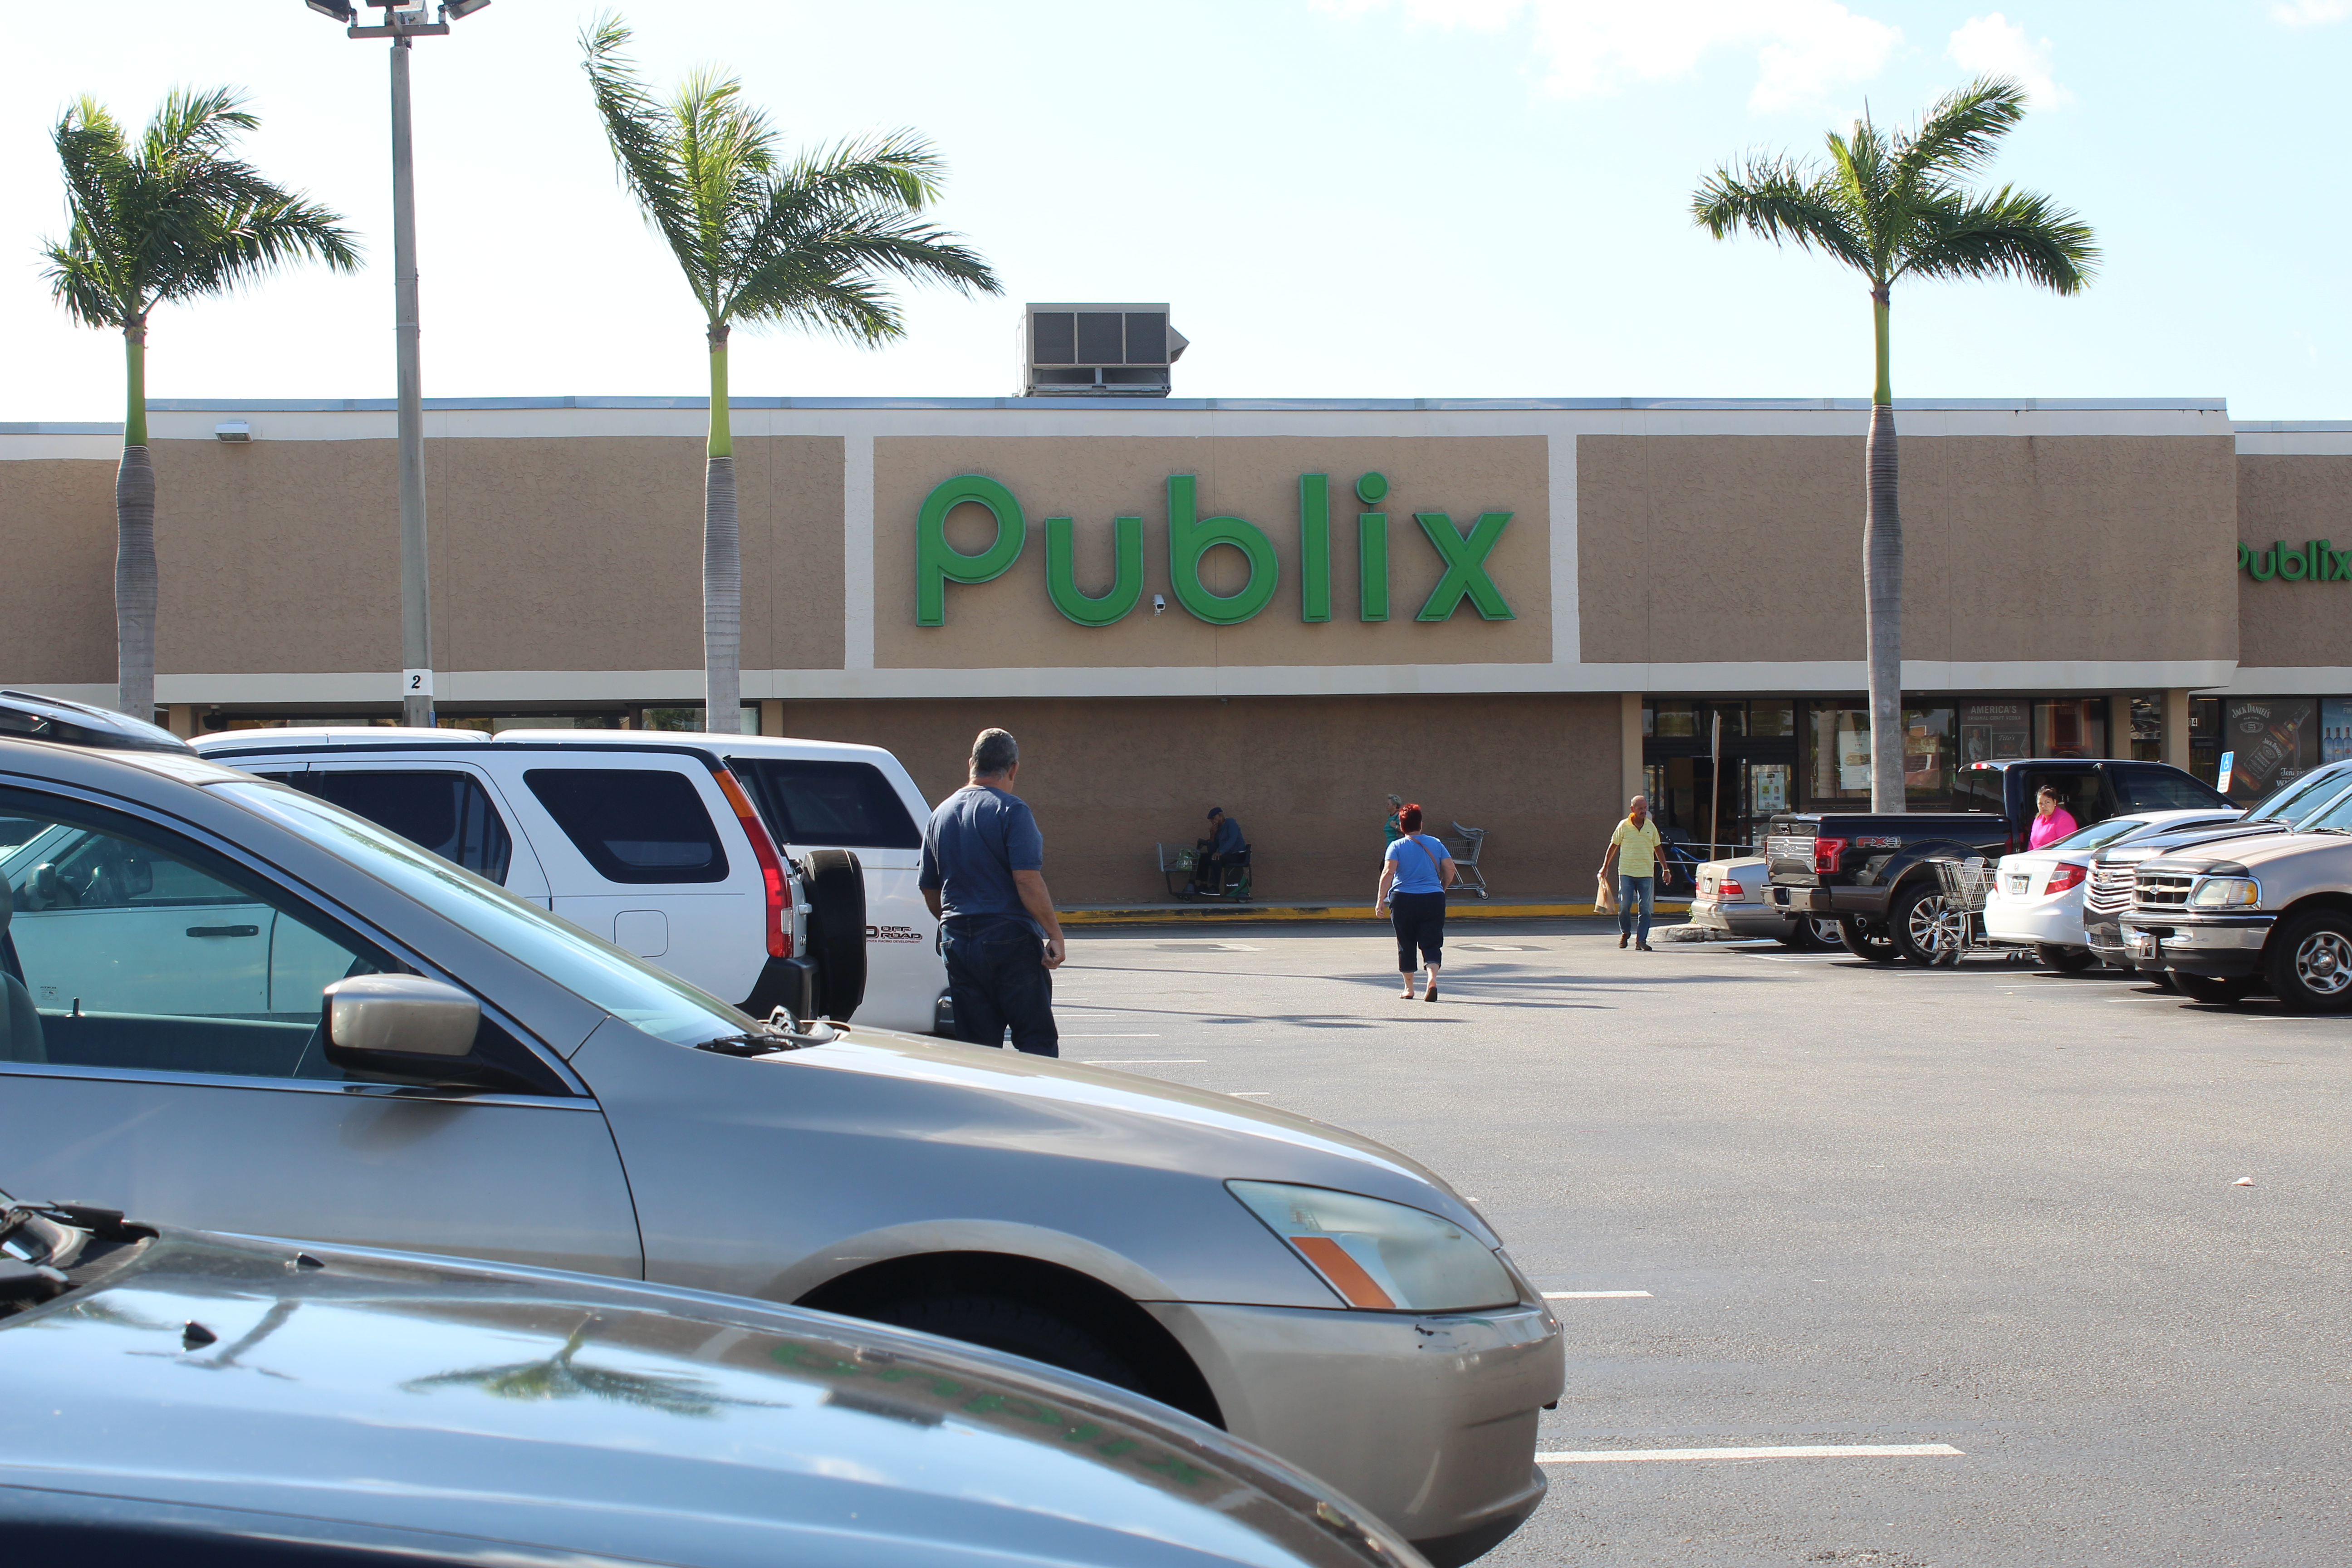 View of Publix on East Hallandale Beach Boulevard